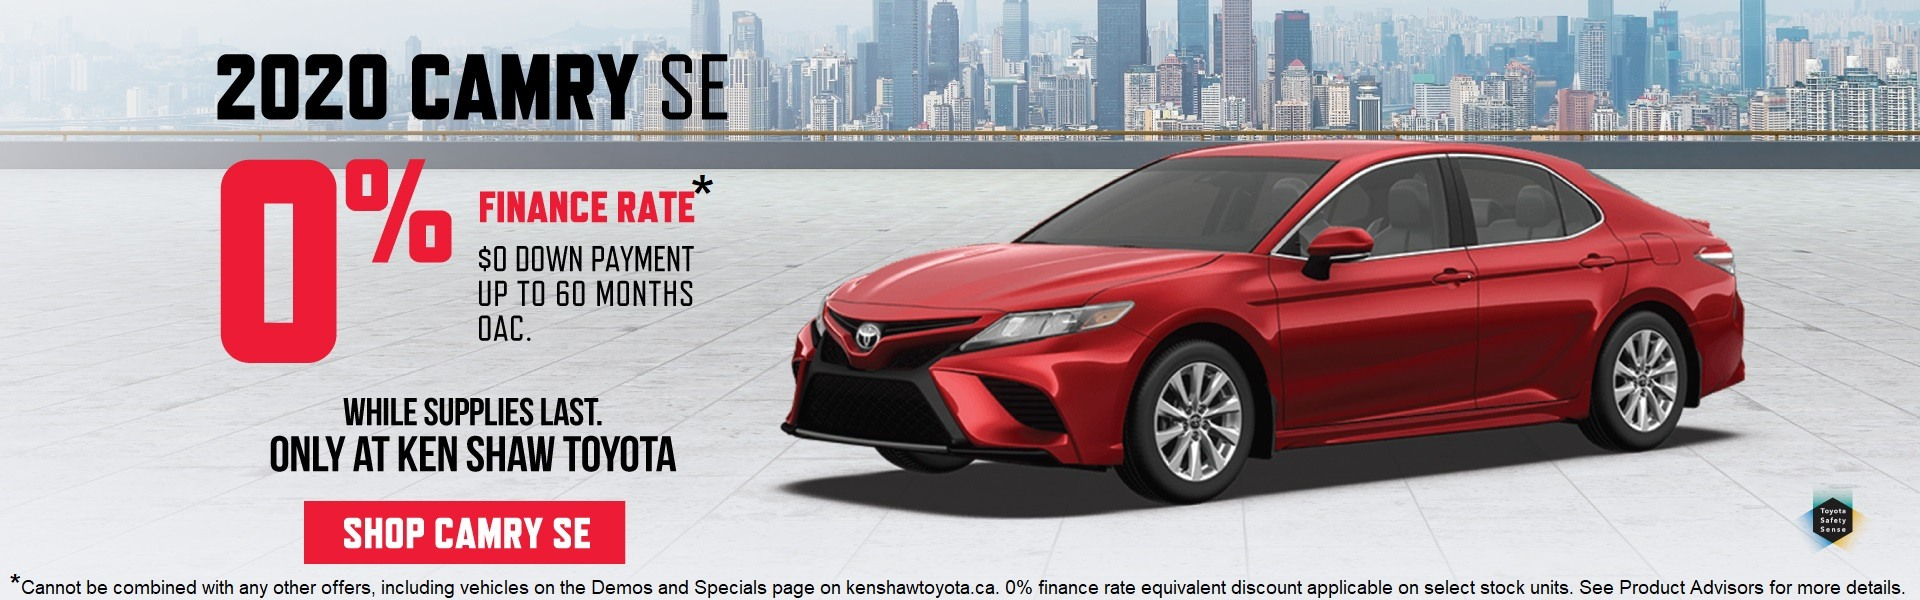 camry on sale at Ken Shaw Toyota in Toronto Promotion